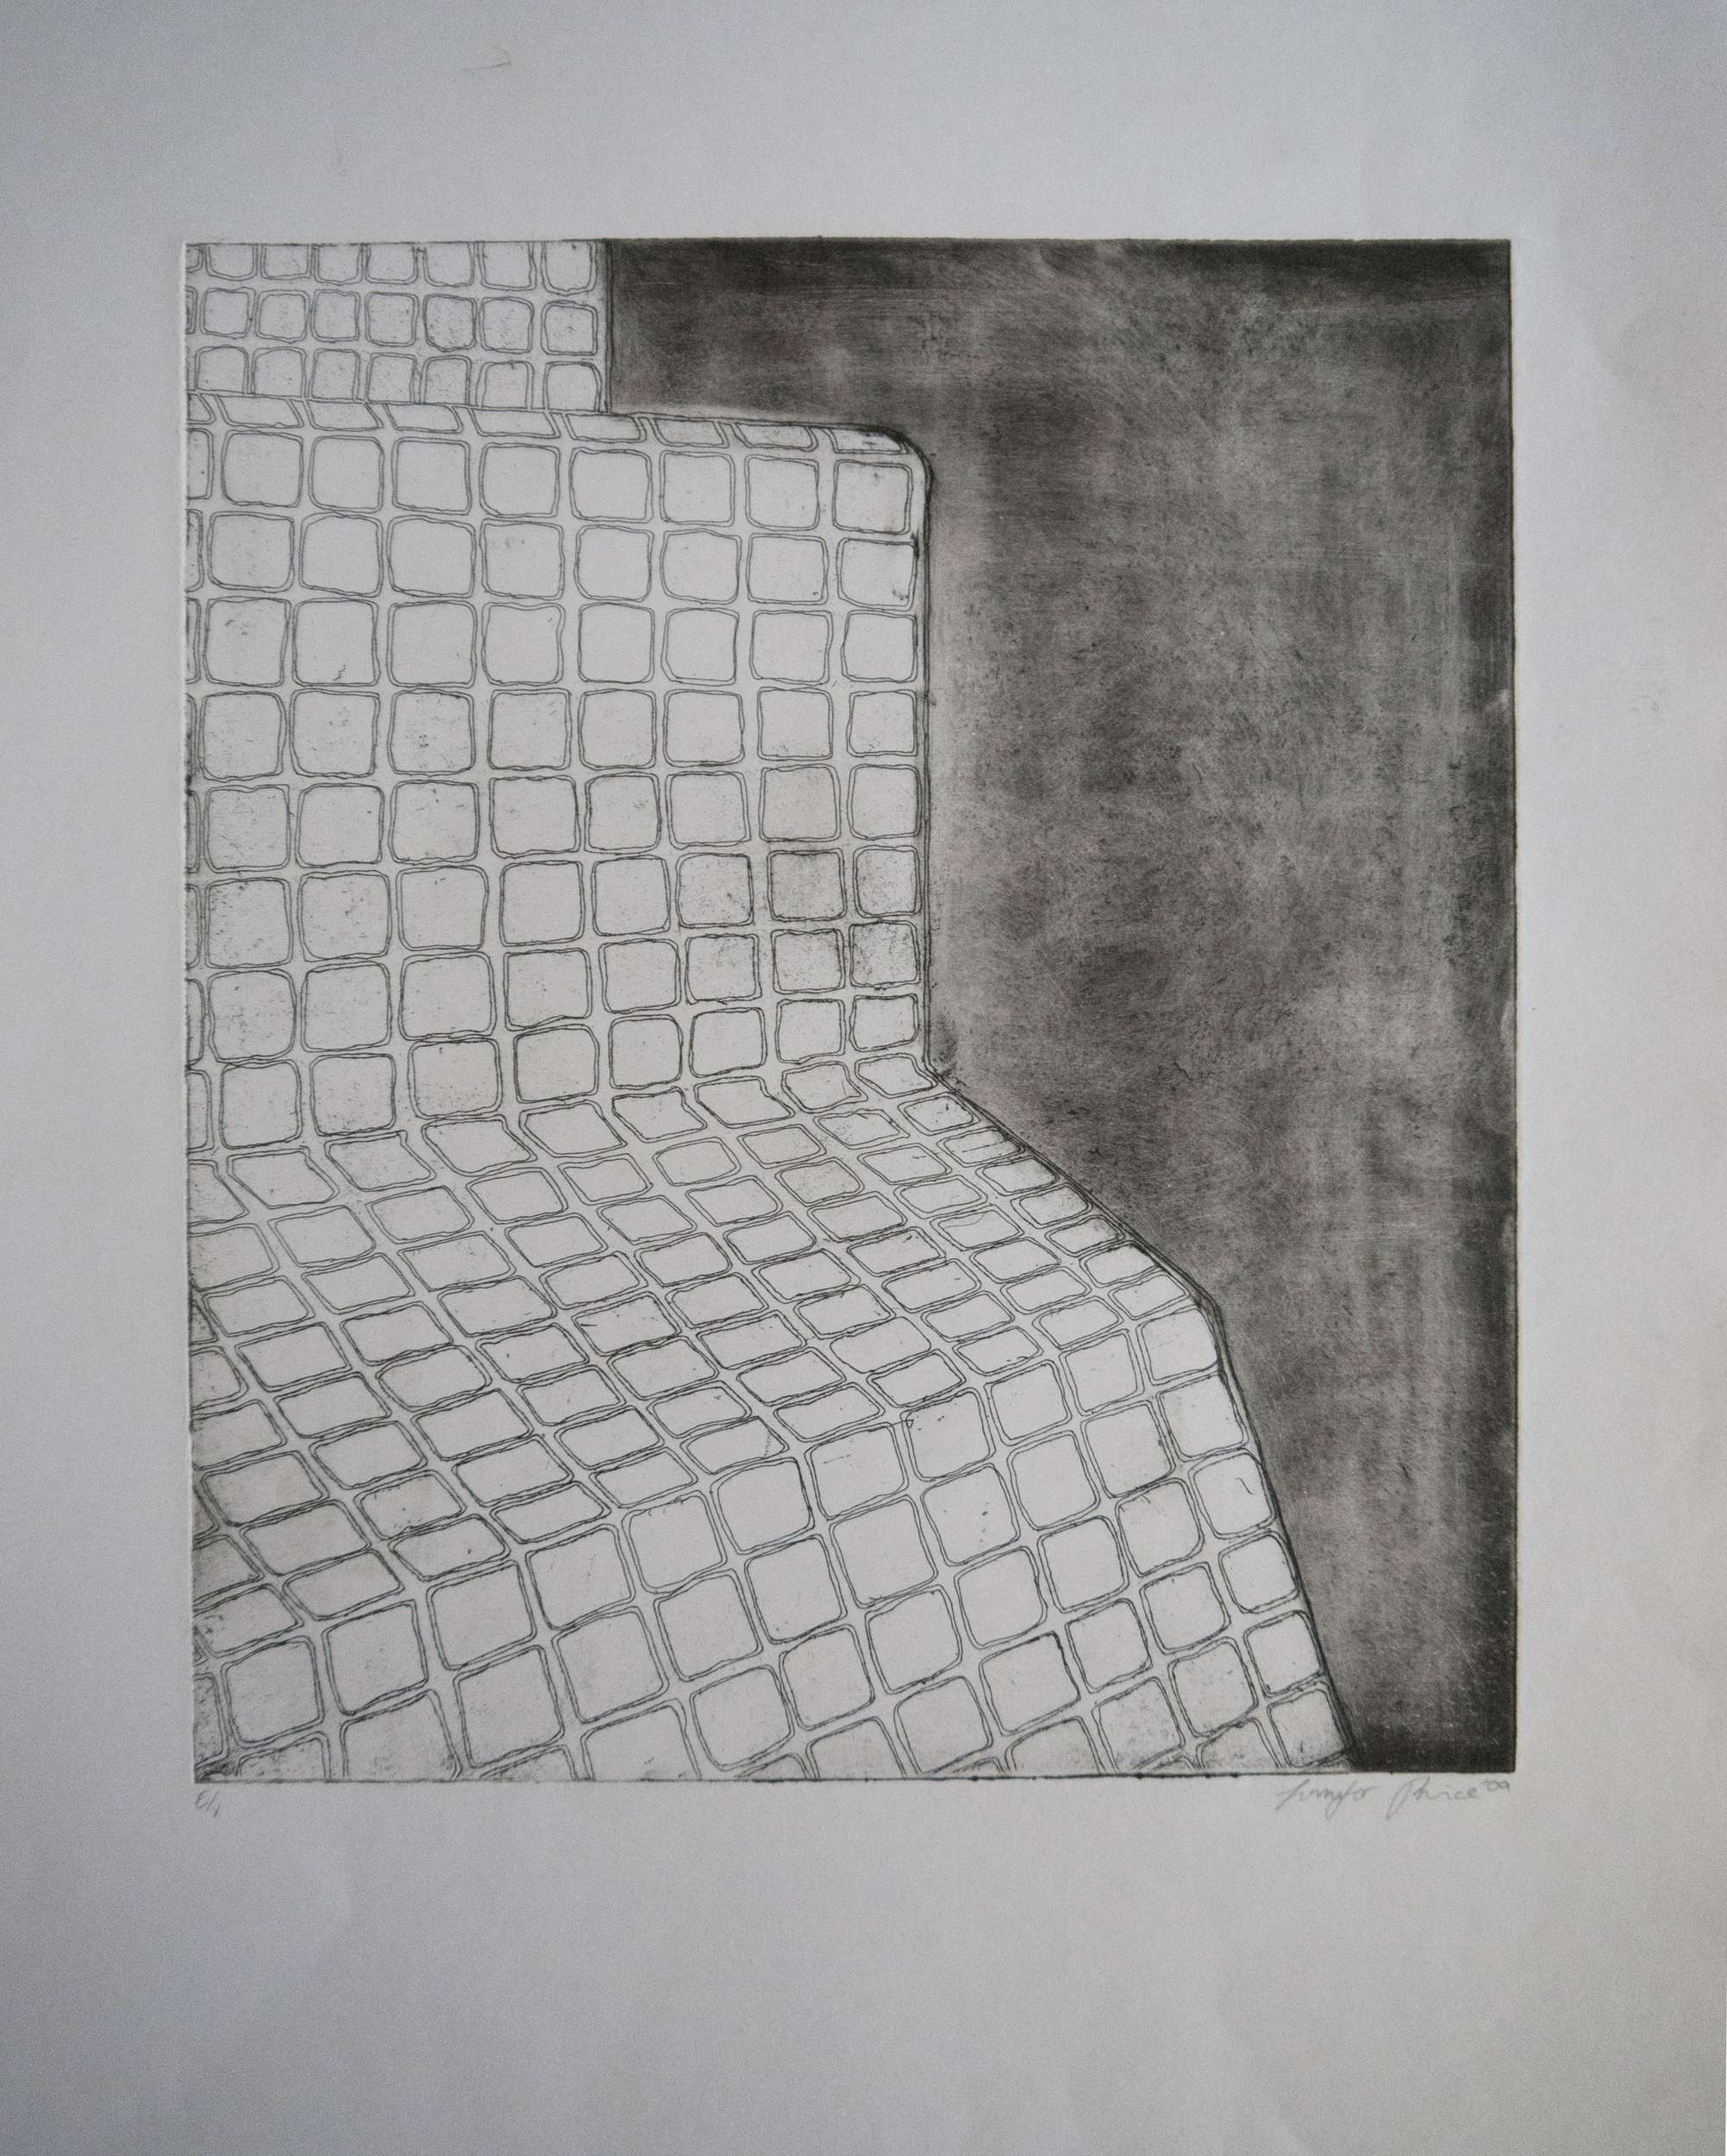 Code 139 Grid_etching_2 Image